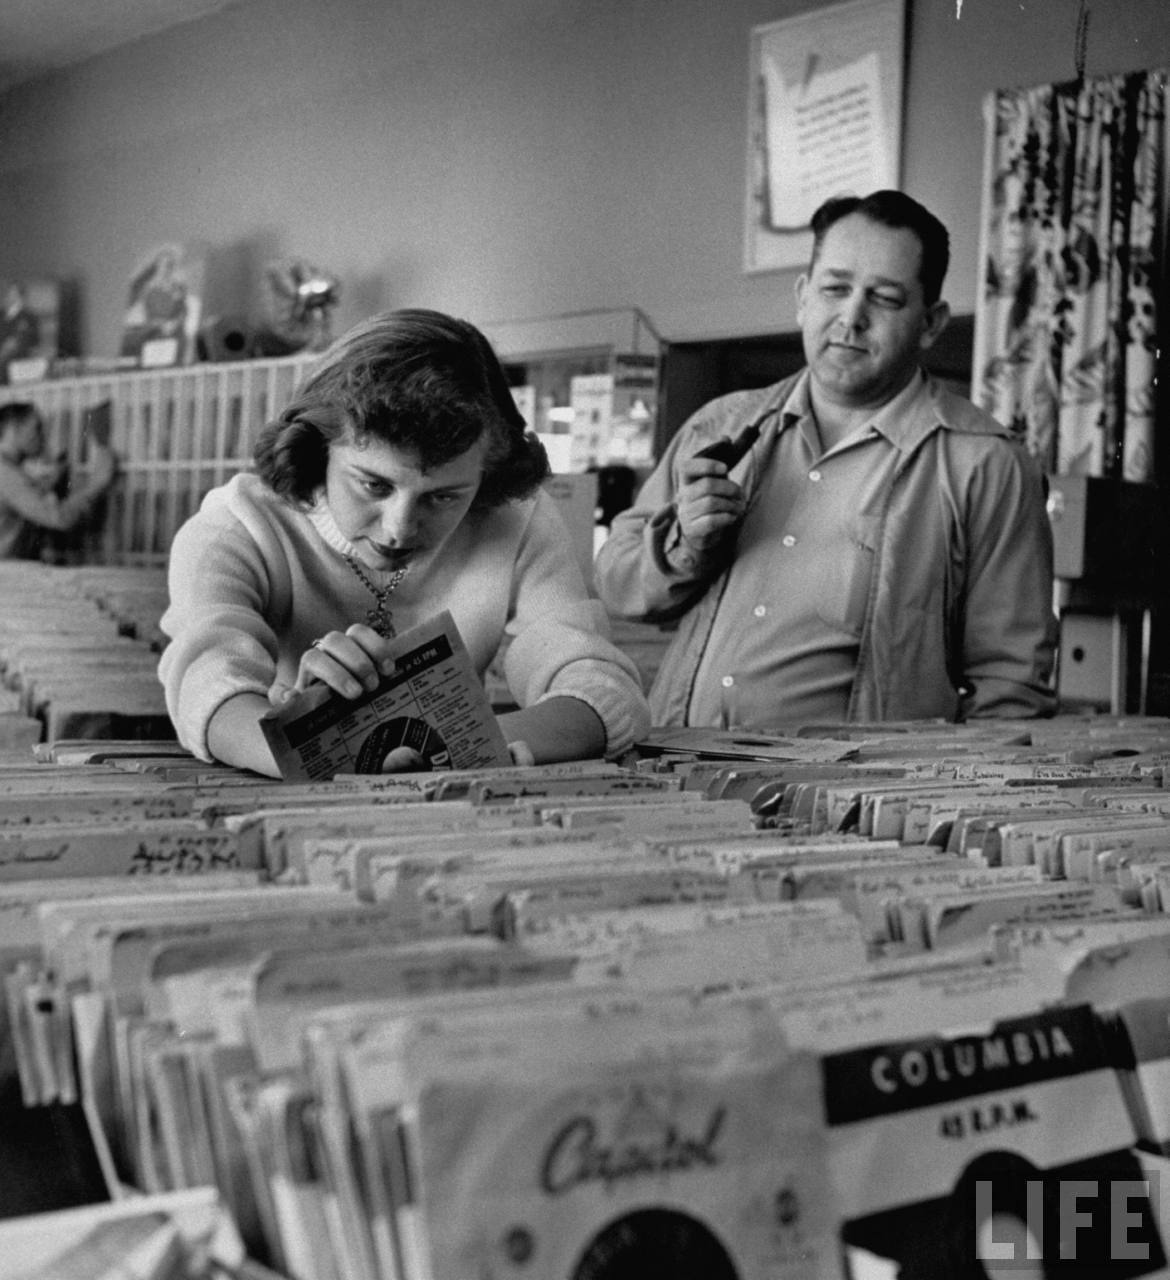 locpix:  Digging for records, 1953